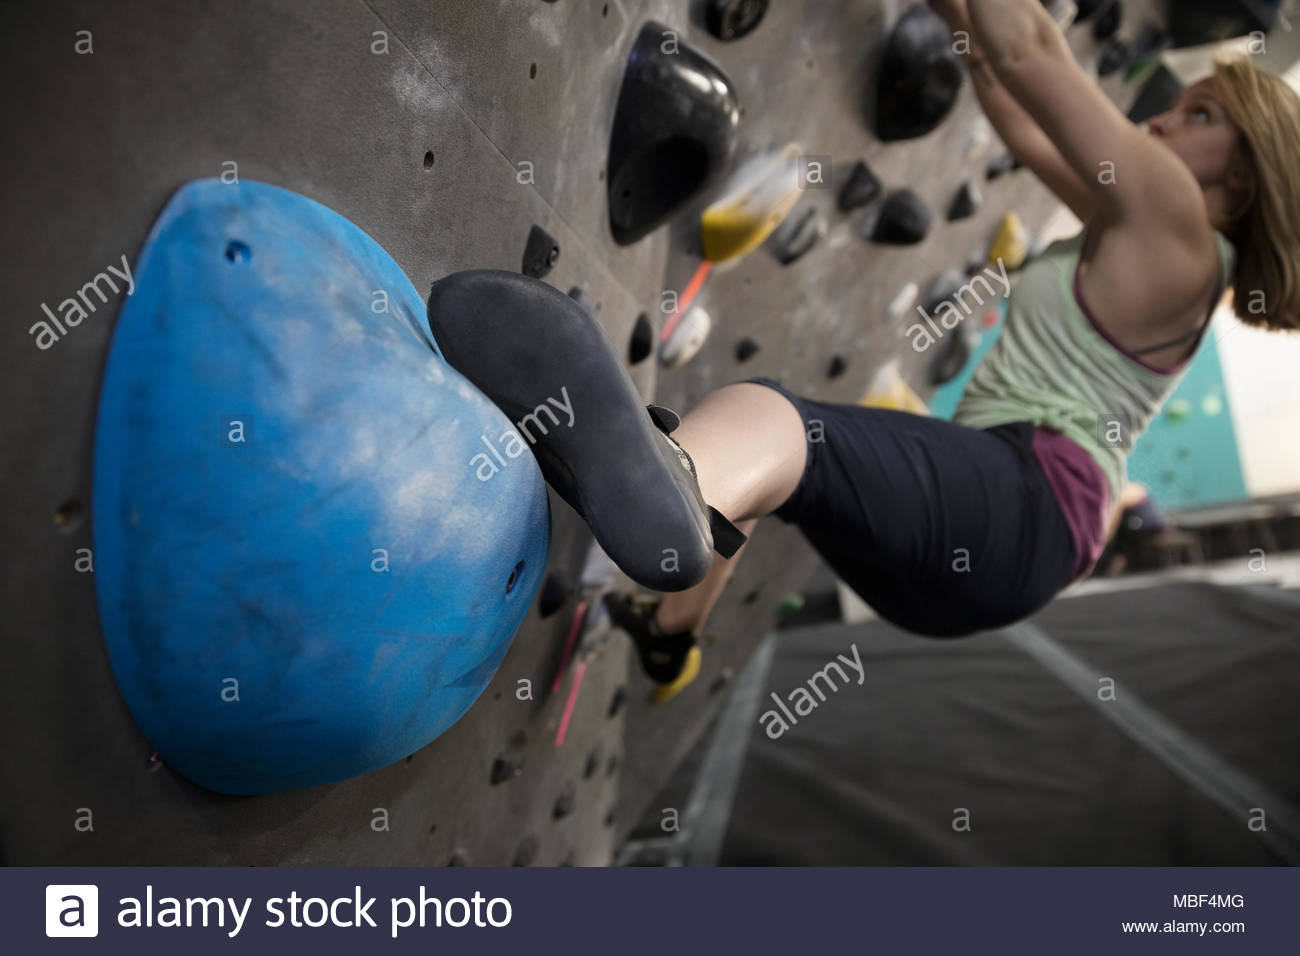 Determined, tough female rock climber climbing wall in climbing gym - Stock Image